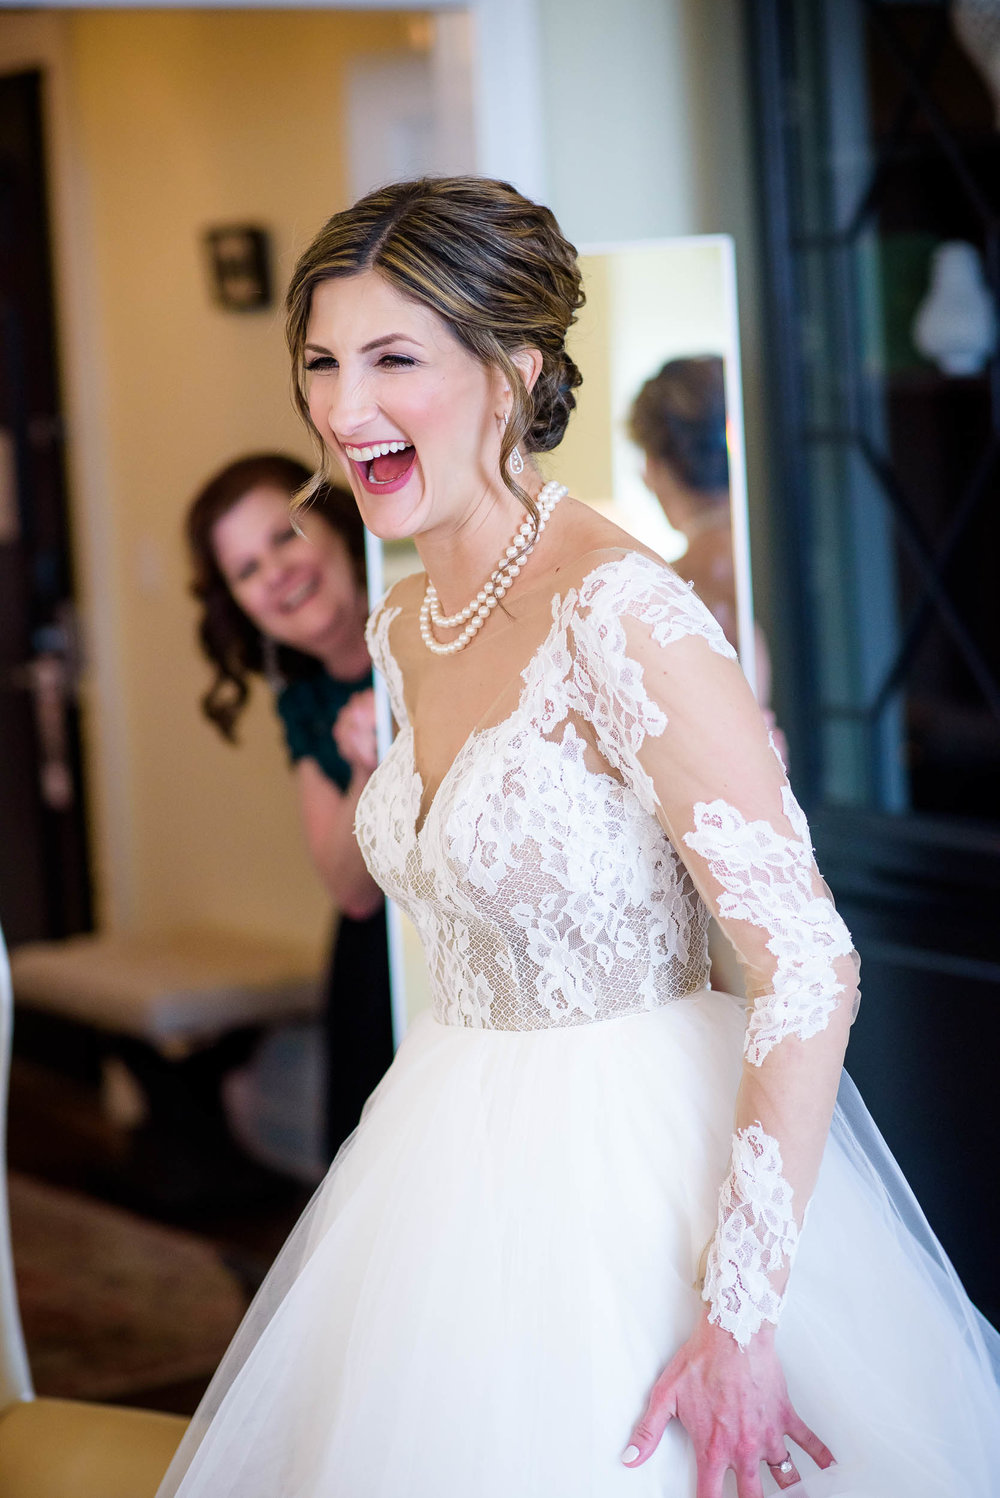 Bride laughs while getting ready during a Blackstone Chicago wedding.